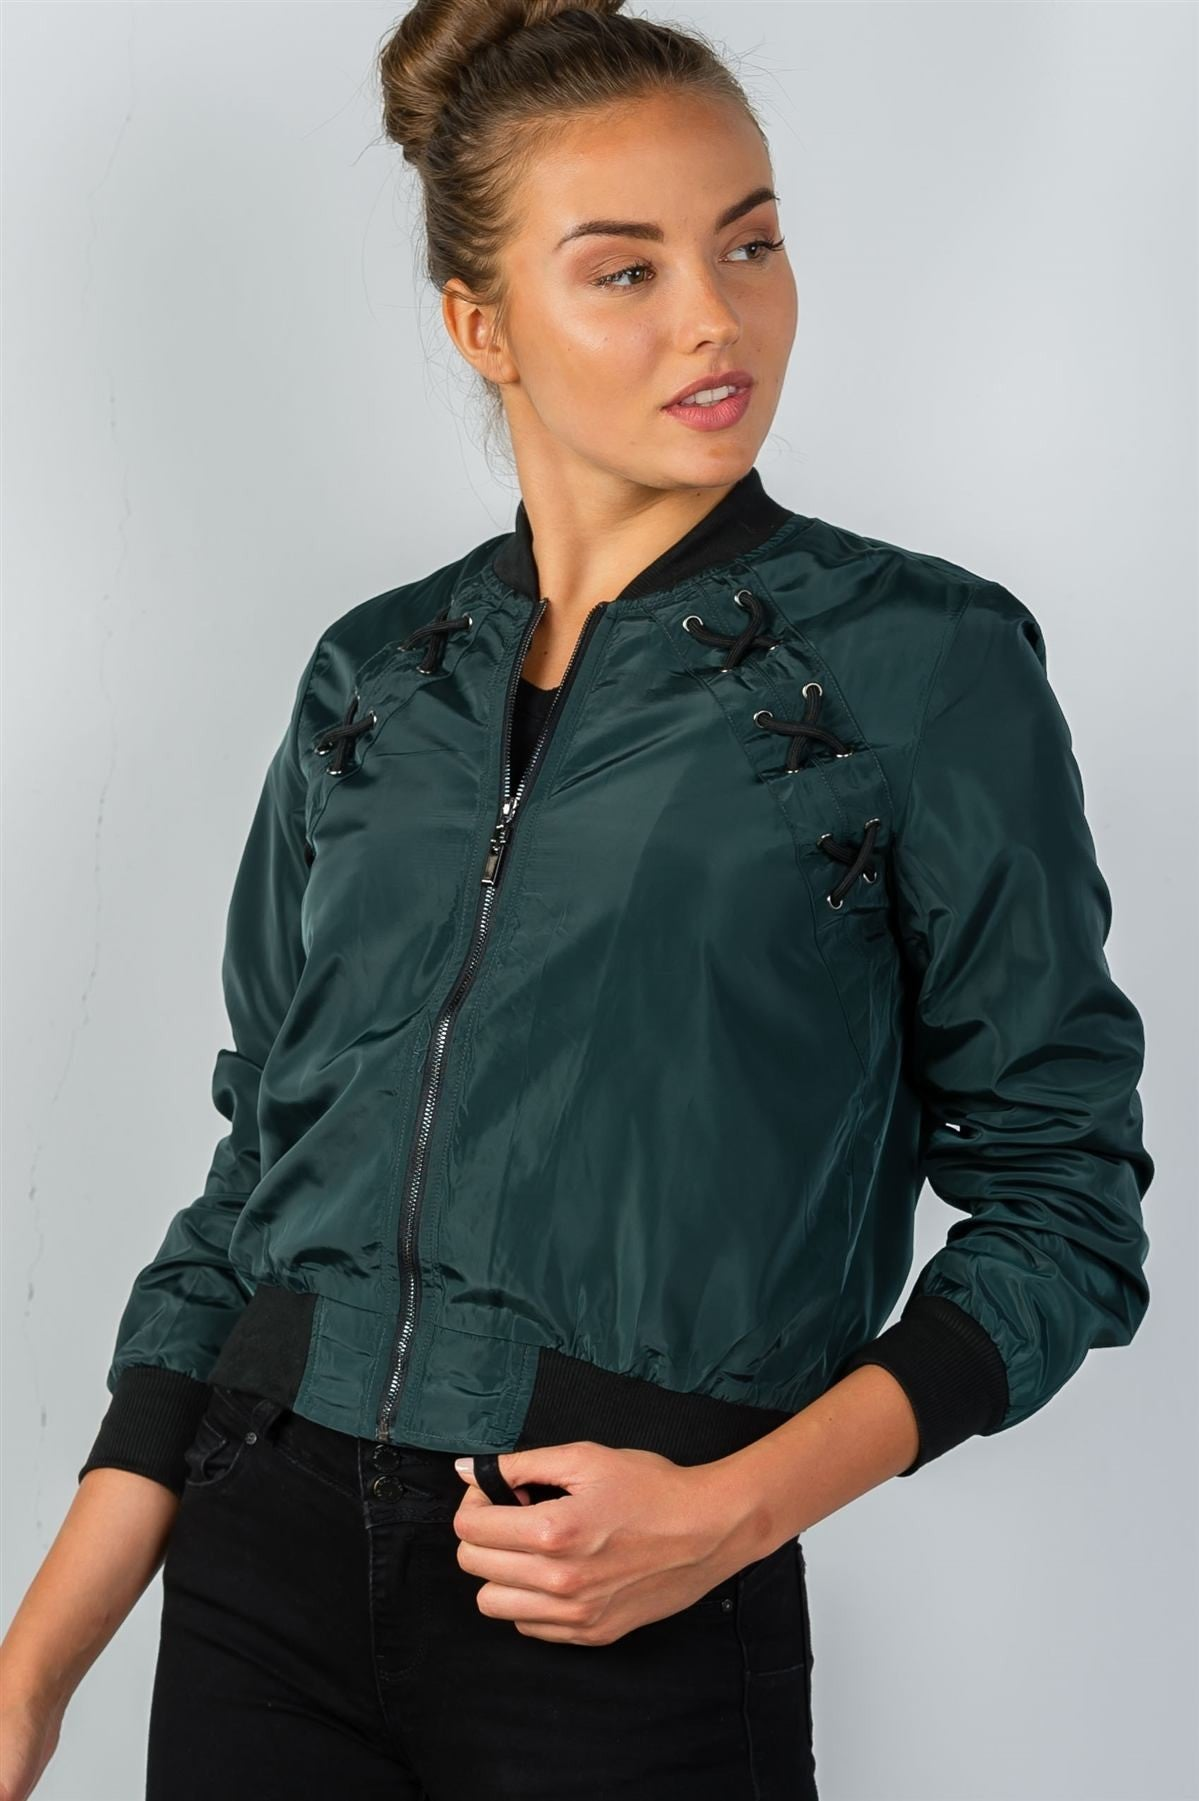 Front Zipper Closure Lace-up Bomber Jacket-jackets-The Poetic Soul